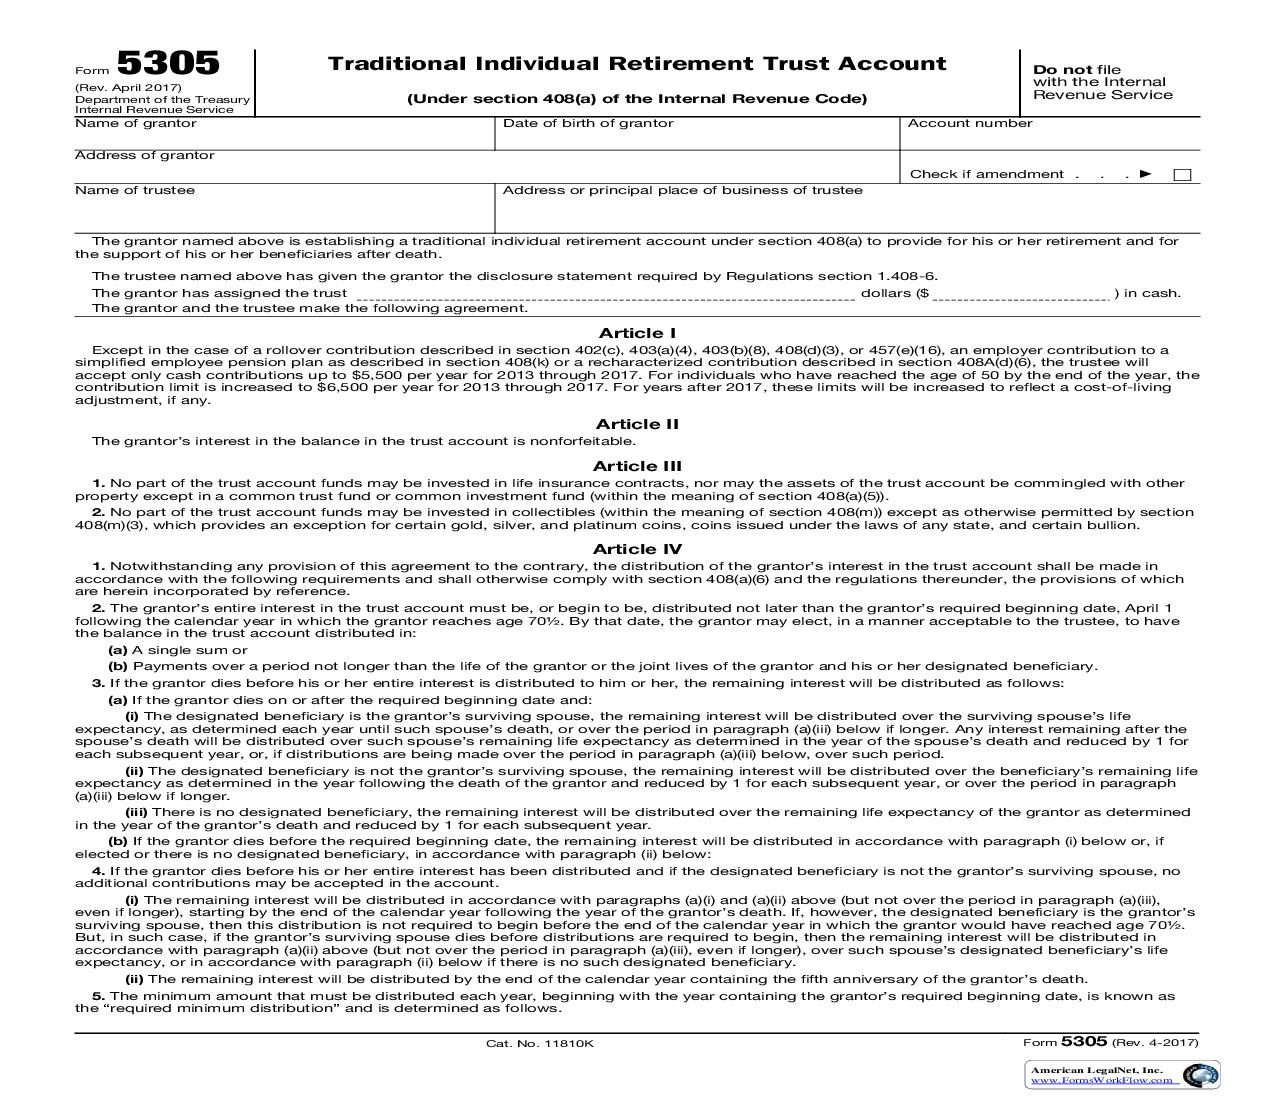 Form 5305 Traditional Individual Retirement Trust Account {5305} | Pdf Fpdf Doc Docx | Official Federal Forms